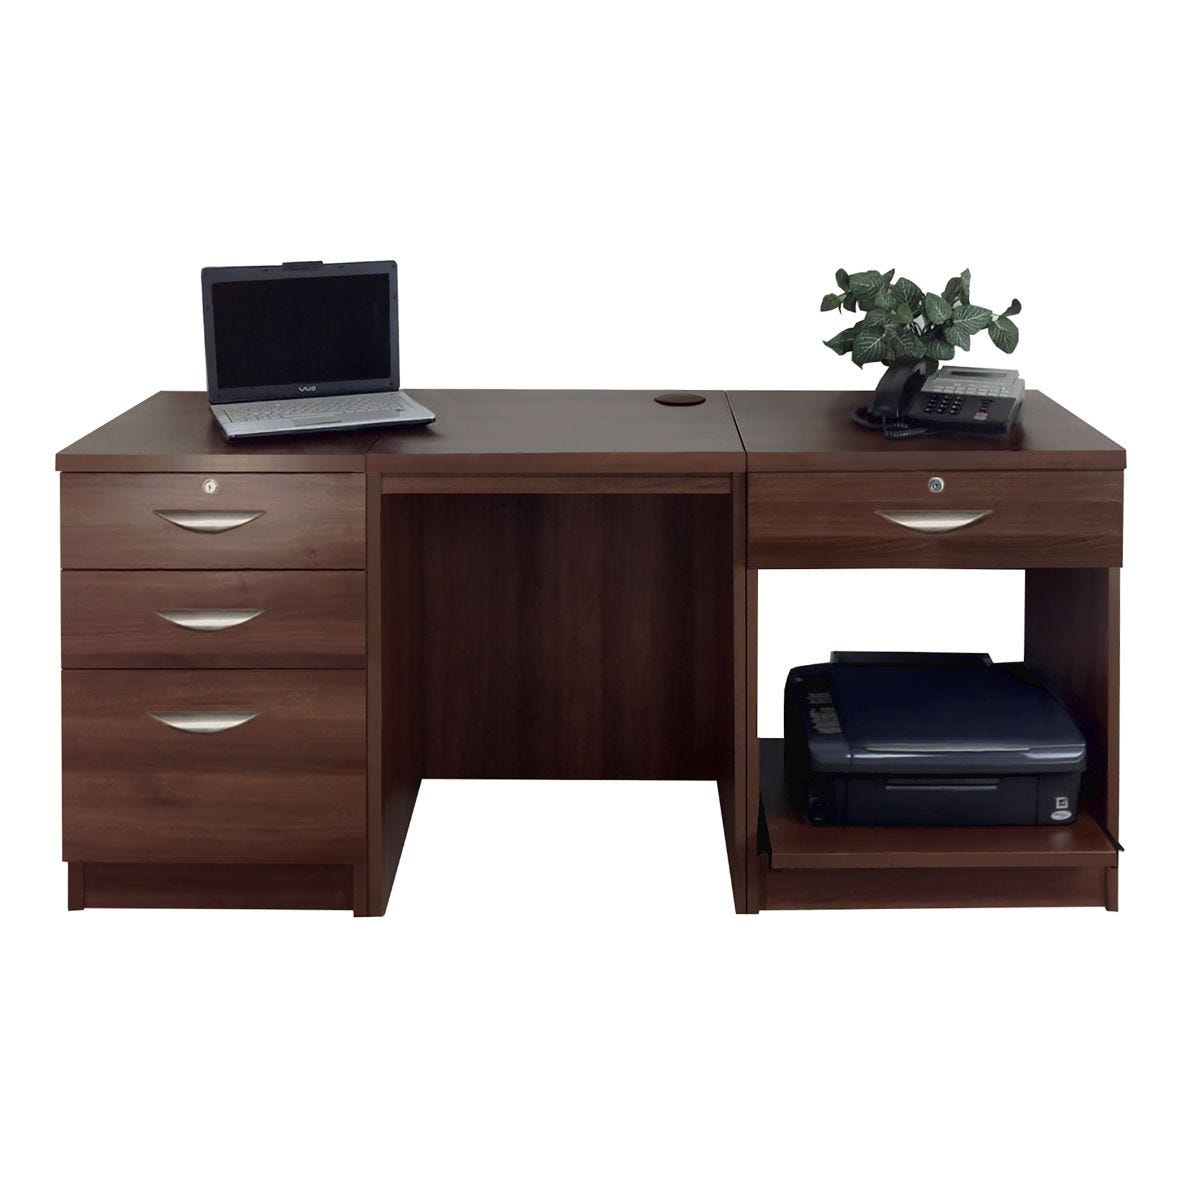 R White Home Office Furniture Desk Set with Drawers and Storage, Walnut